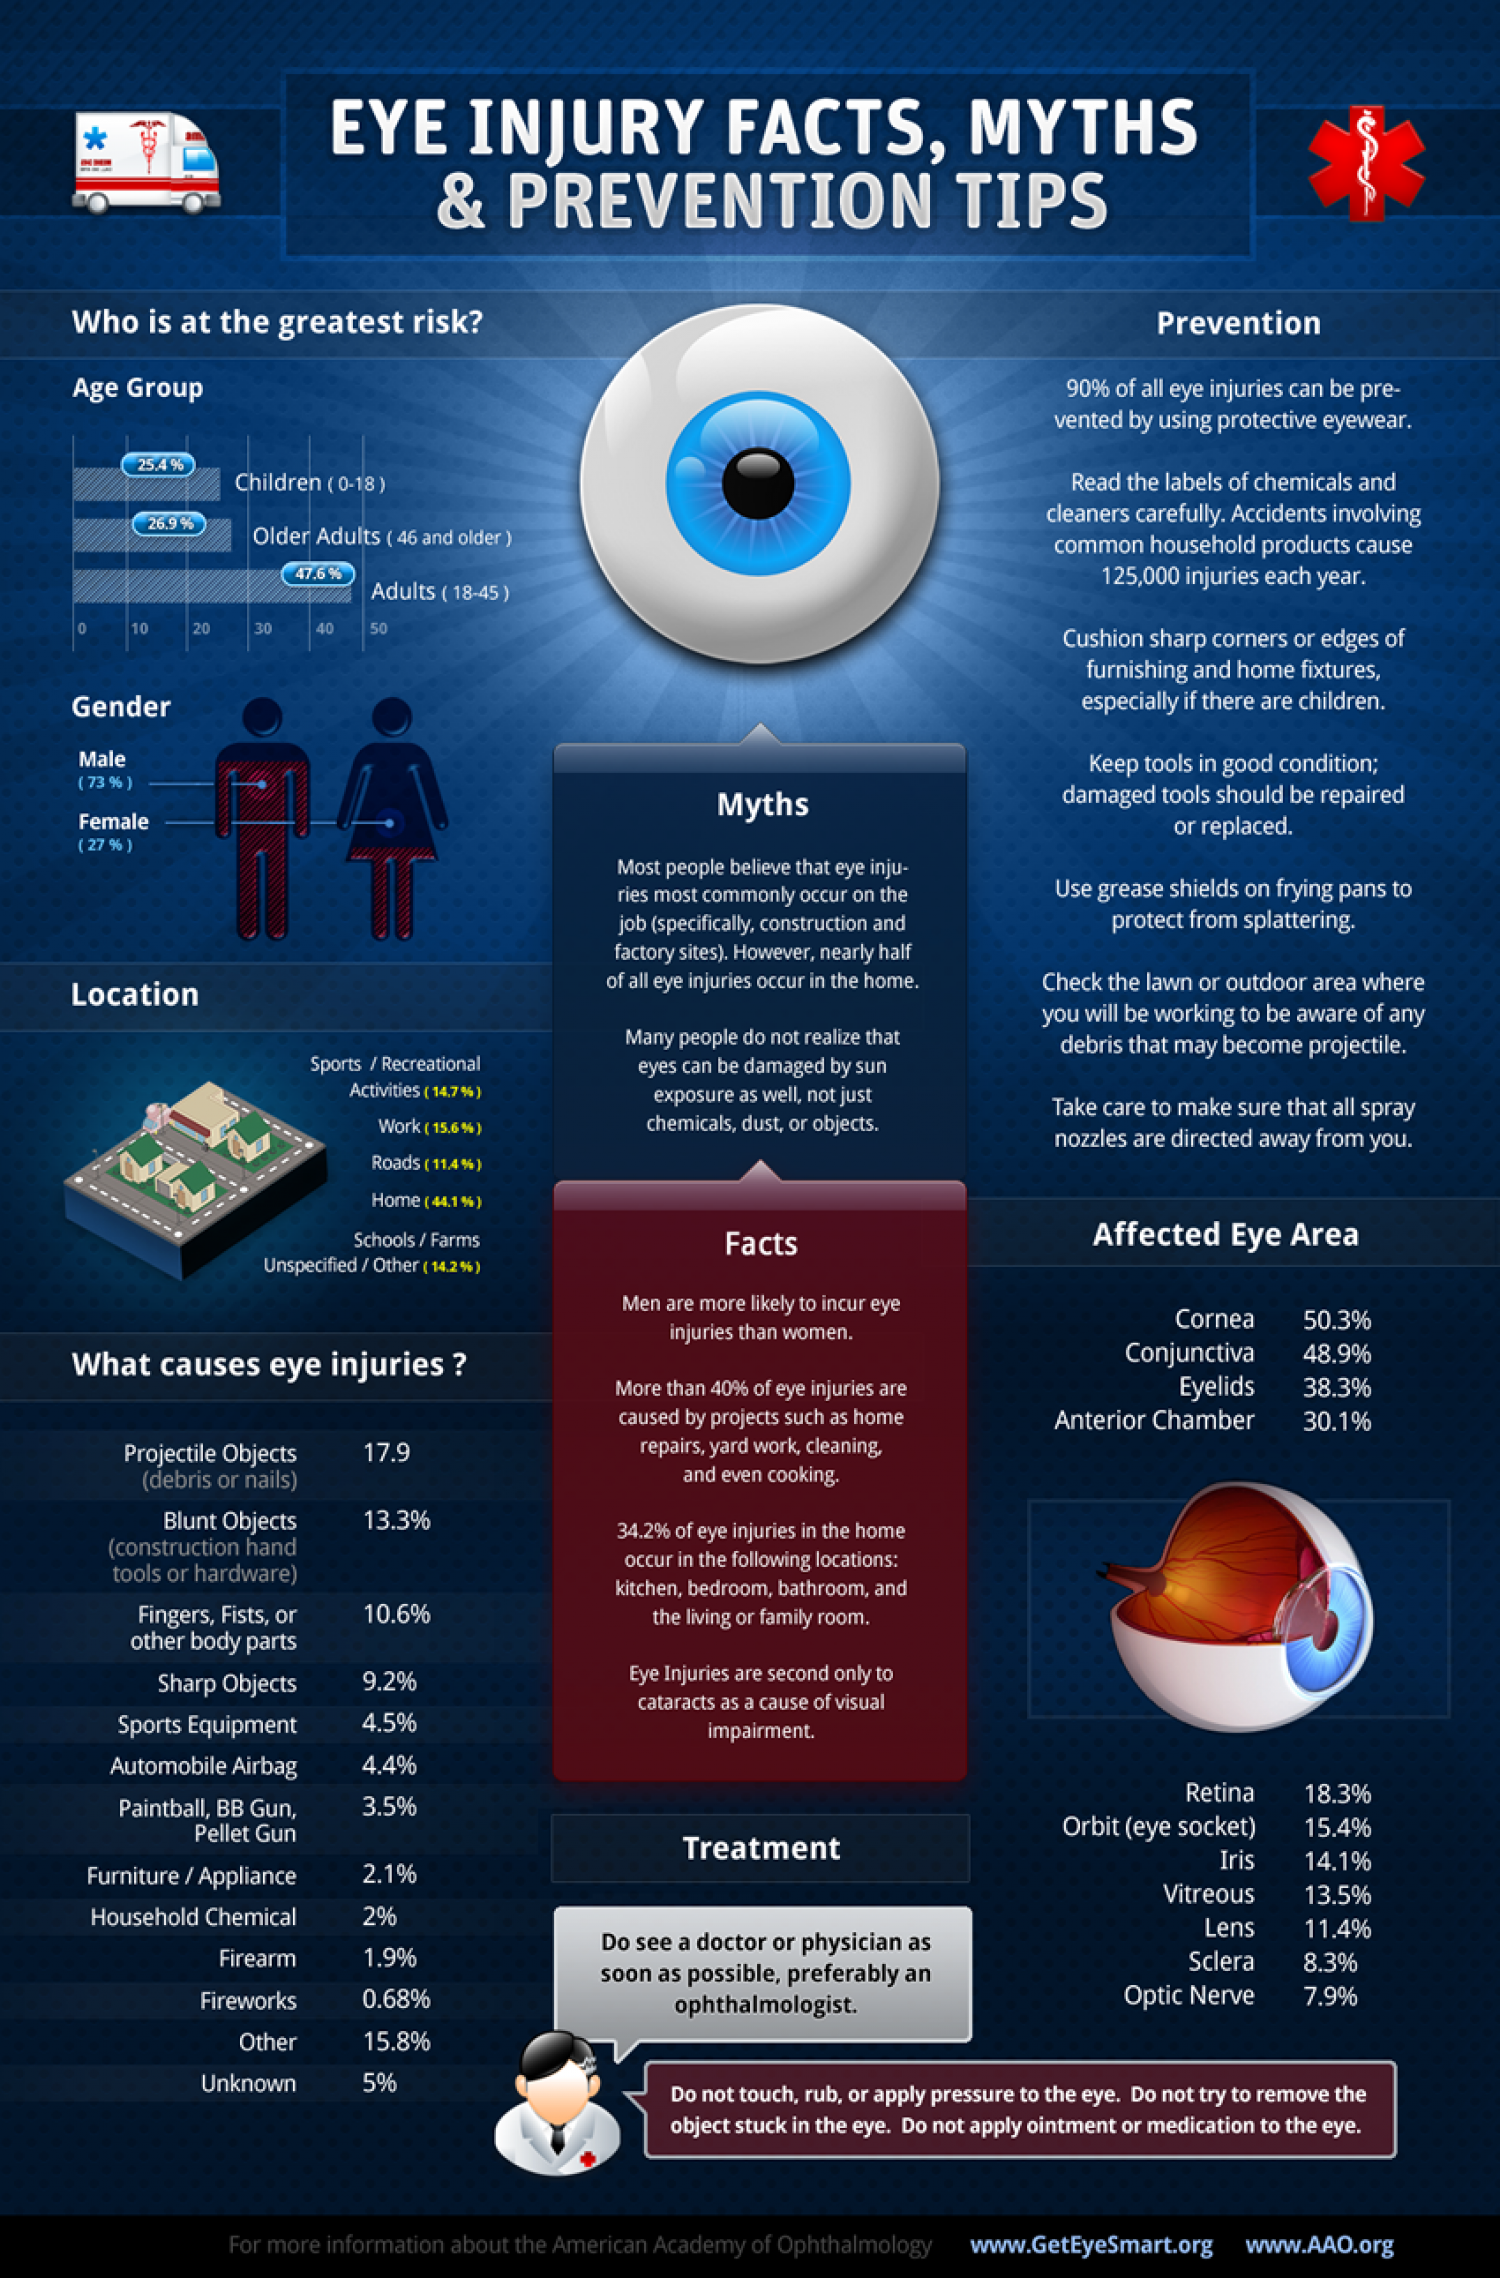 Eye Injury Facts, Myths and Prevention Tips Infographic